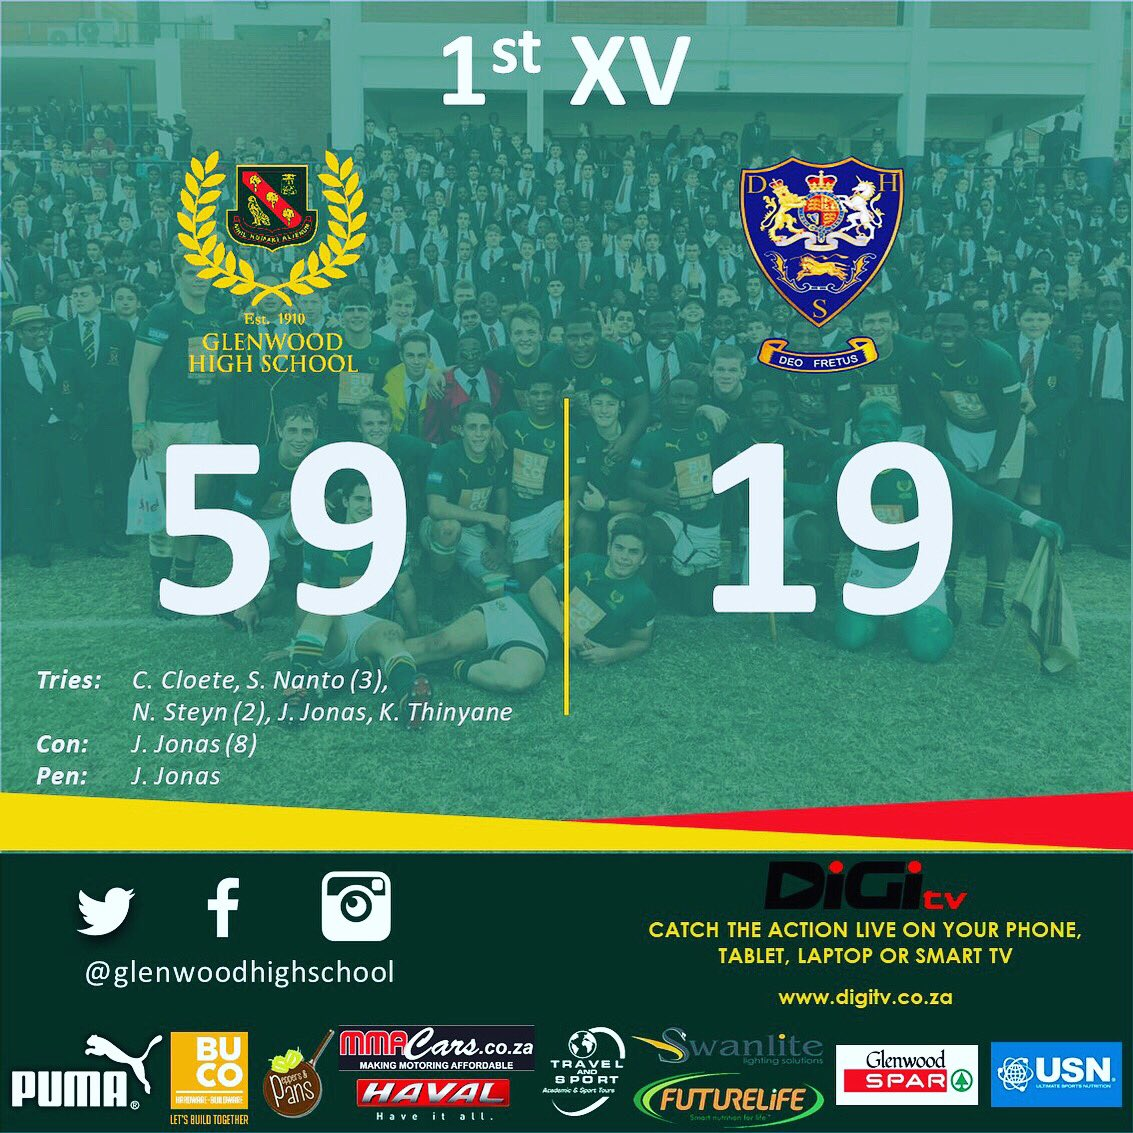 D7-9UzzXoAAAgrR School of Rugby | Teams - School of Rugby